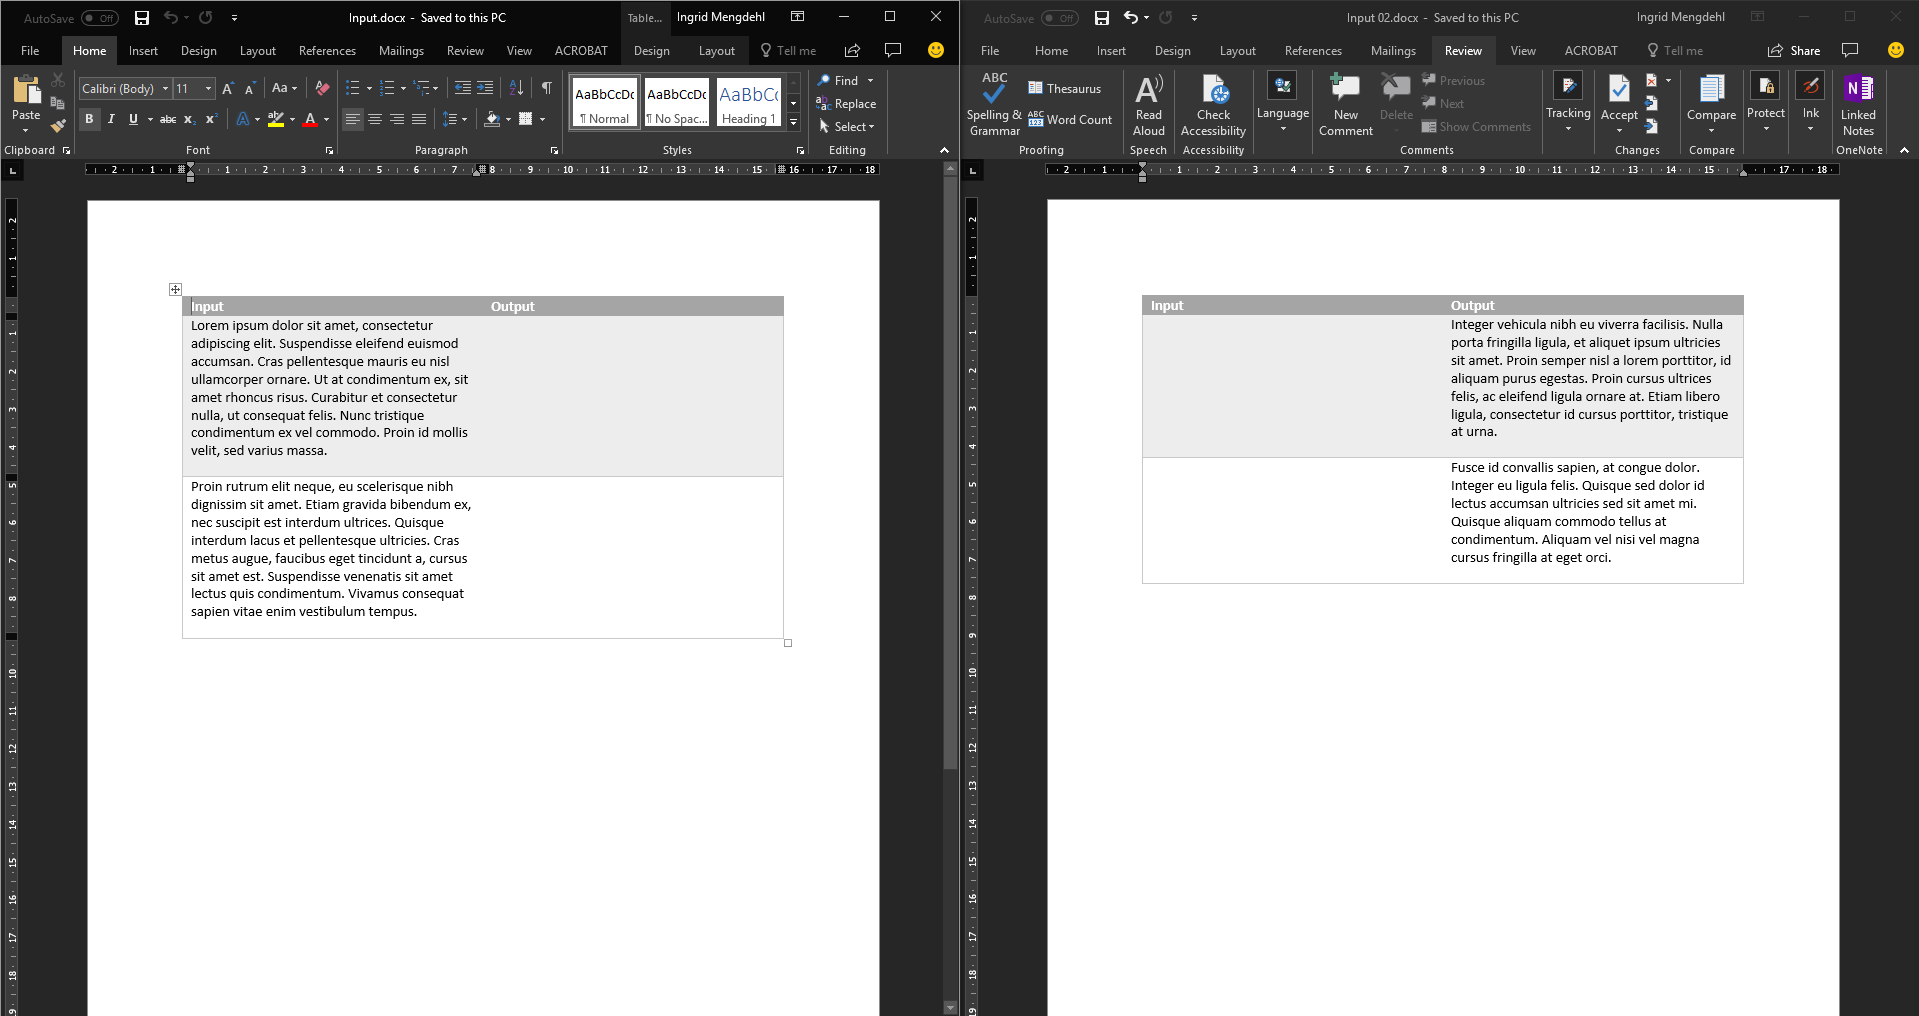 Merge two versions of a document